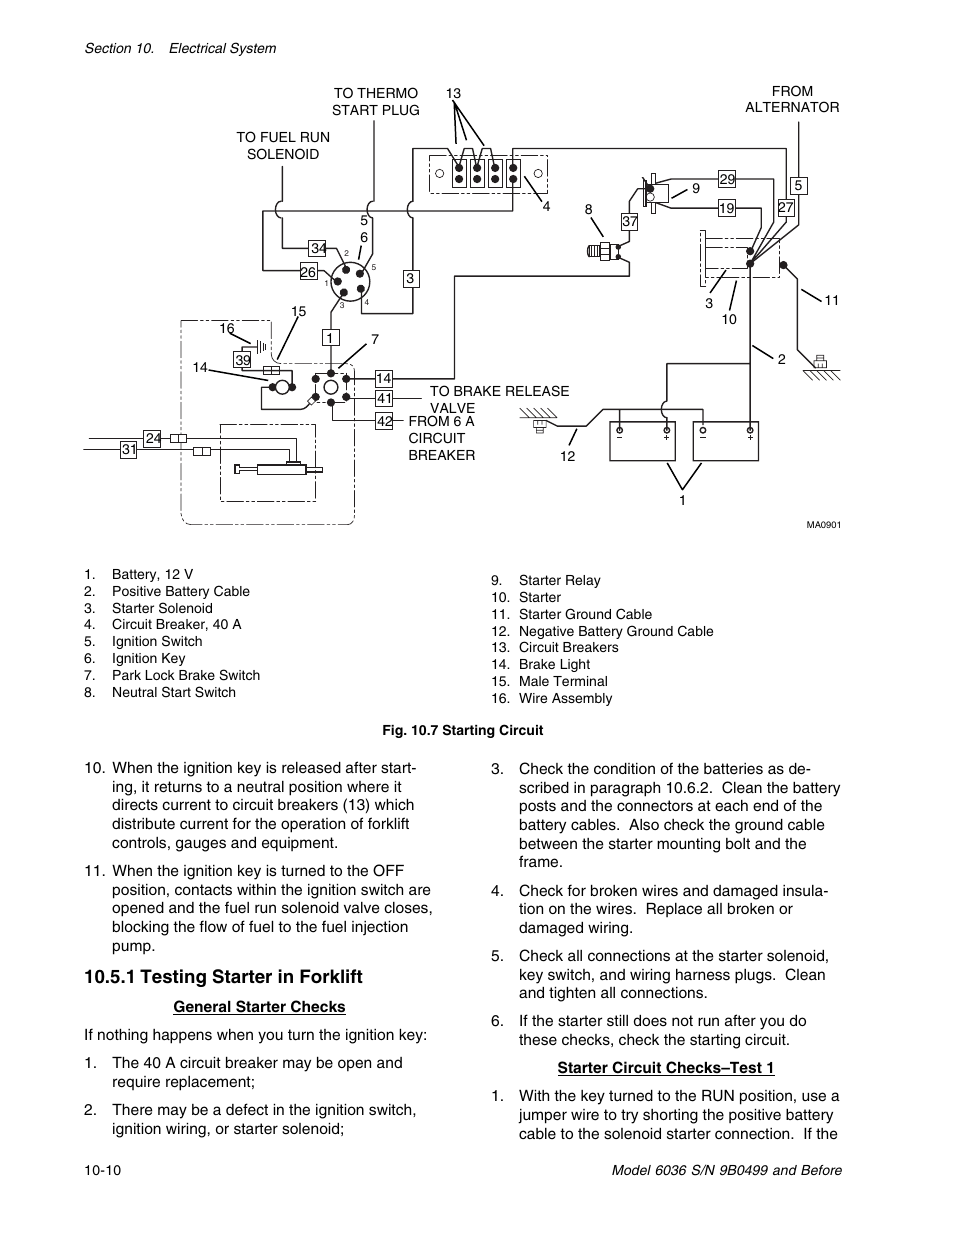 1 Testing Starter In Forklift Skytrak 6036 Service Manual User 120 Volt Solenoid Switch Wiring Diagram Page 204 280